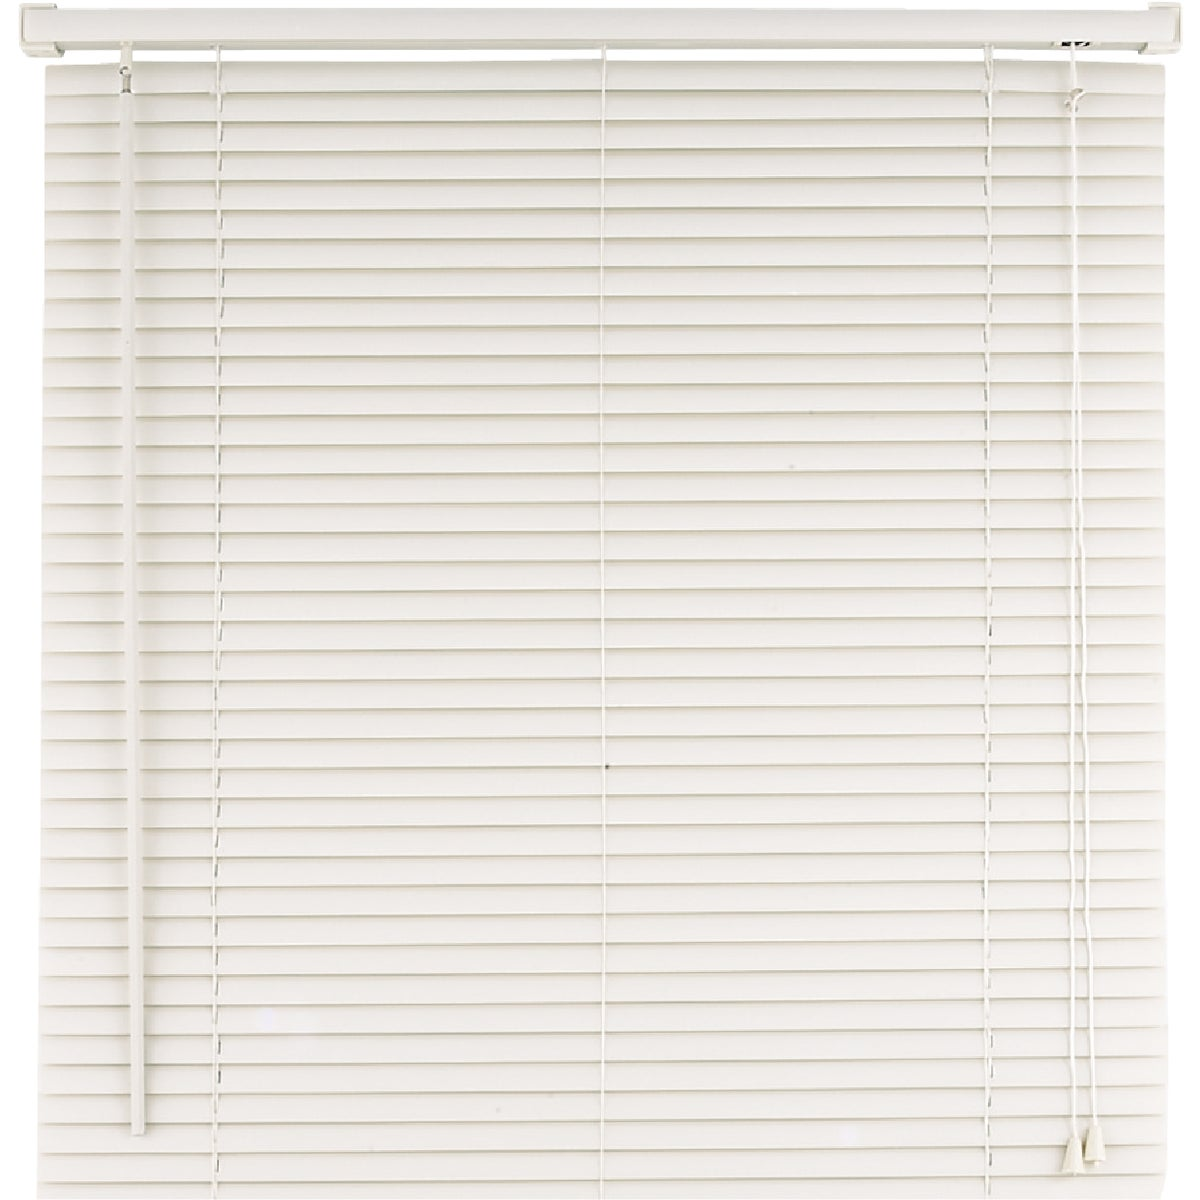 29X64 WHITE BLIND - 15036 by Lotus Wind Incom